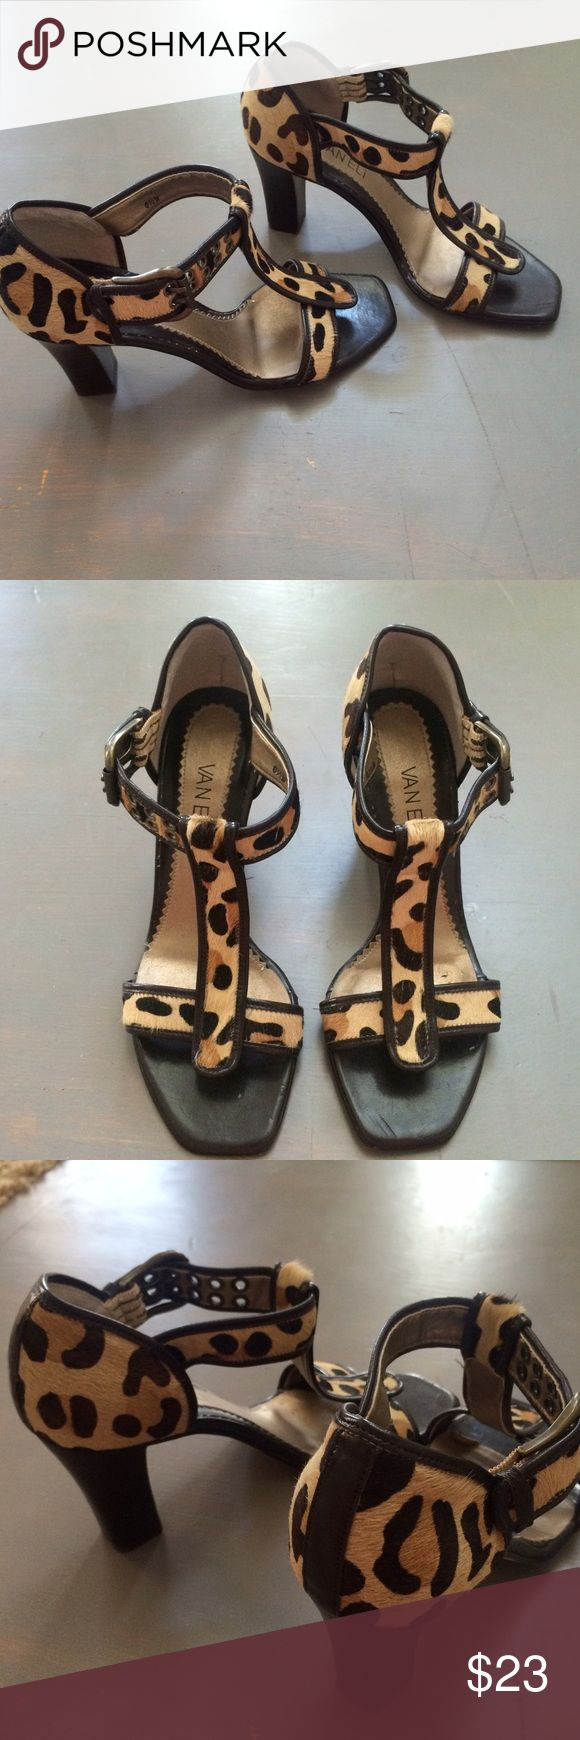 "Vaneli Animal Print Heels Sandals 6.5 -gently worn gorgeous heels  -some obvious wear on inside see pic 4 -some wear on bottom  -3 & 1/2"" heel Vaneli Shoes Heels"